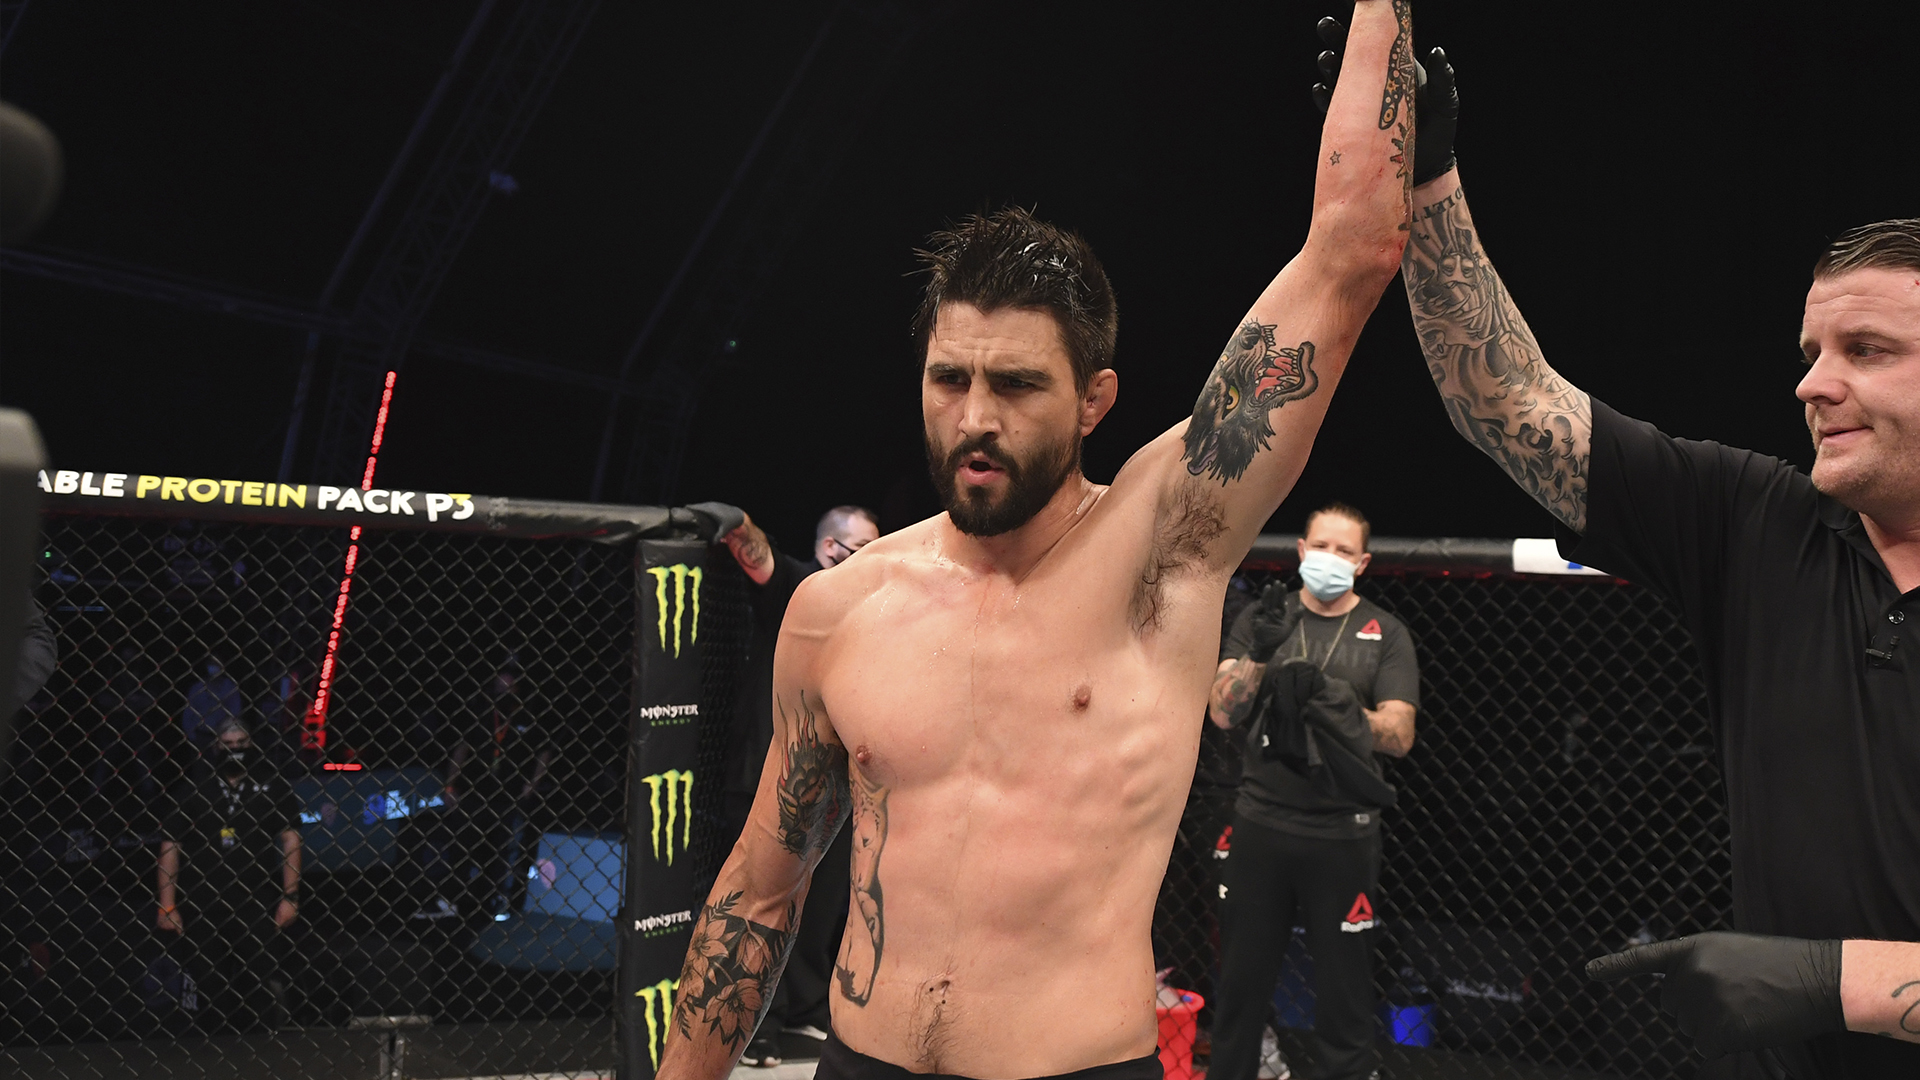 Carlos Condit reacts after defeating Court McGee in their welterweight bout during the UFC Fight Night event inside Flash Forum on UFC Fight Island on October 04, 2020 in Abu Dhabi, United Arab Emirates. (Photo by Josh Hedges/Zuffa LLC)